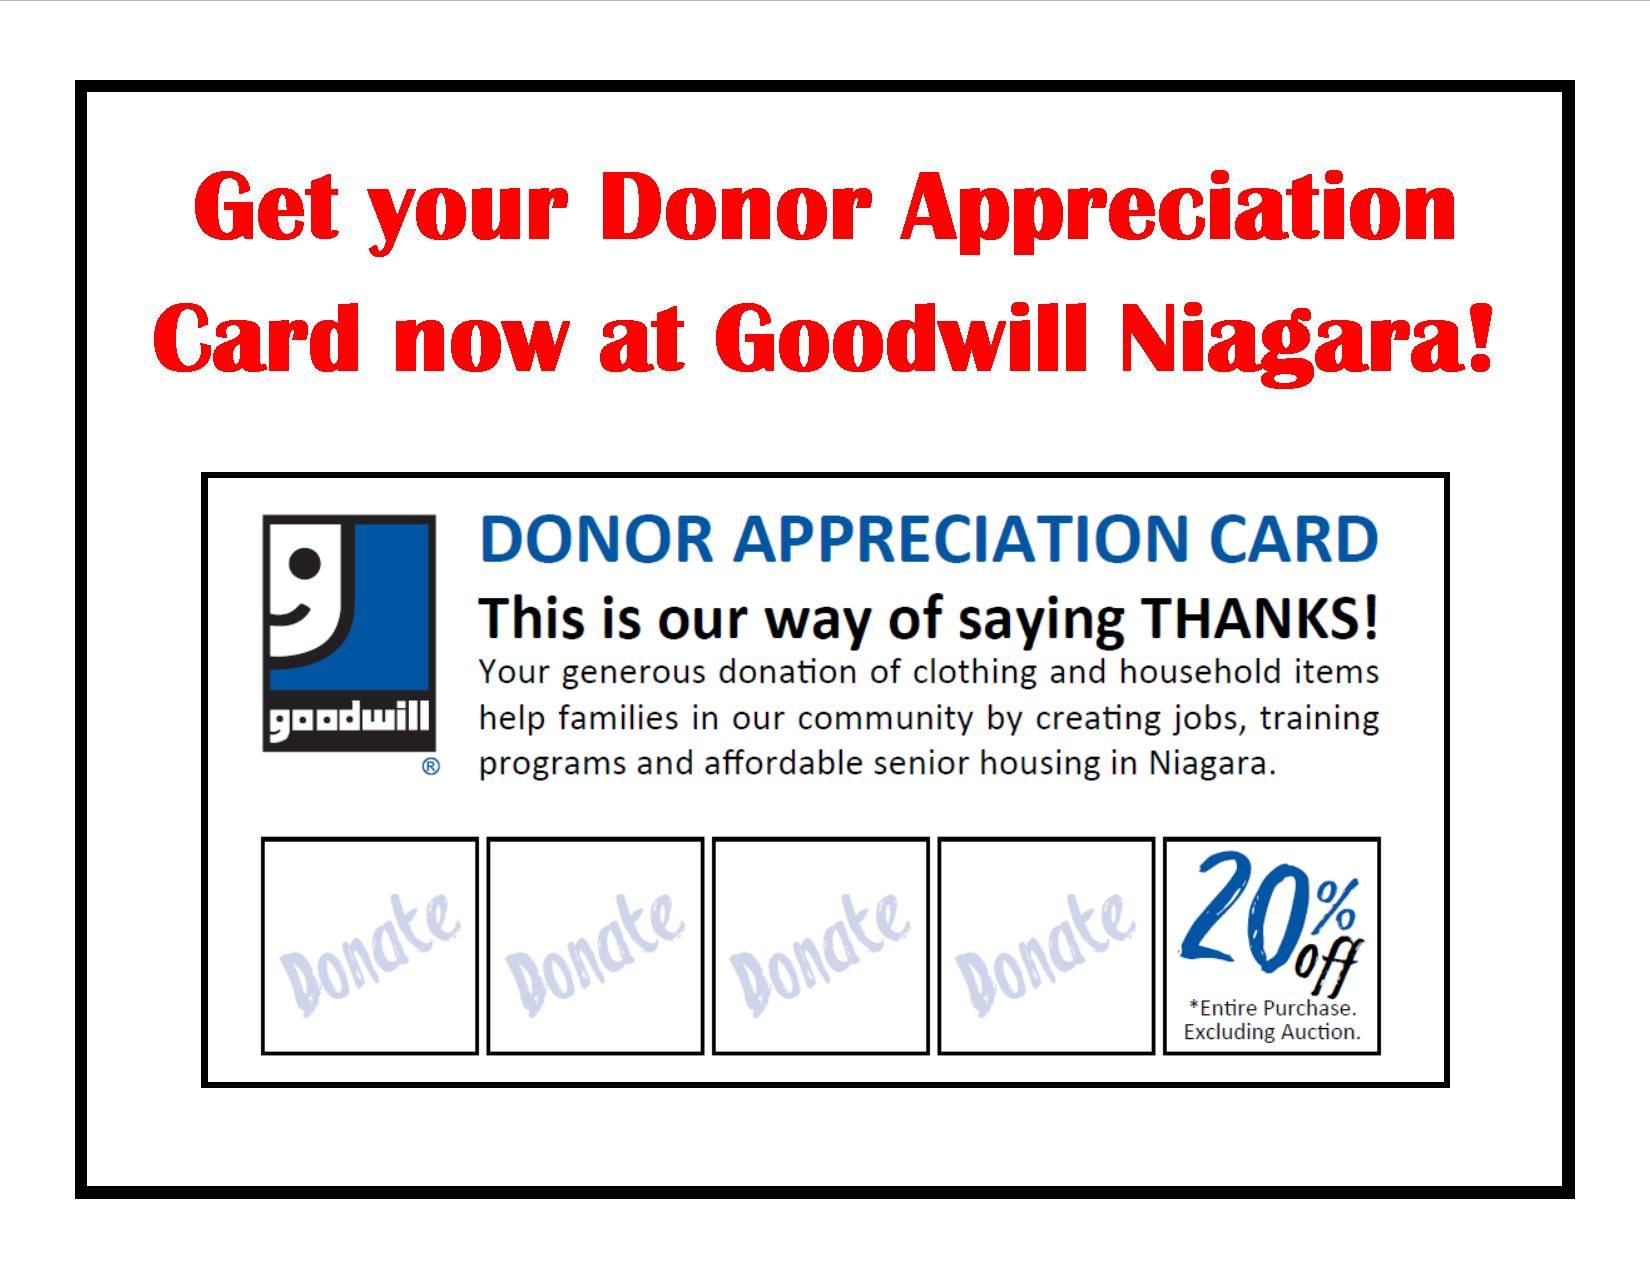 GWN Donor Appreciation Card